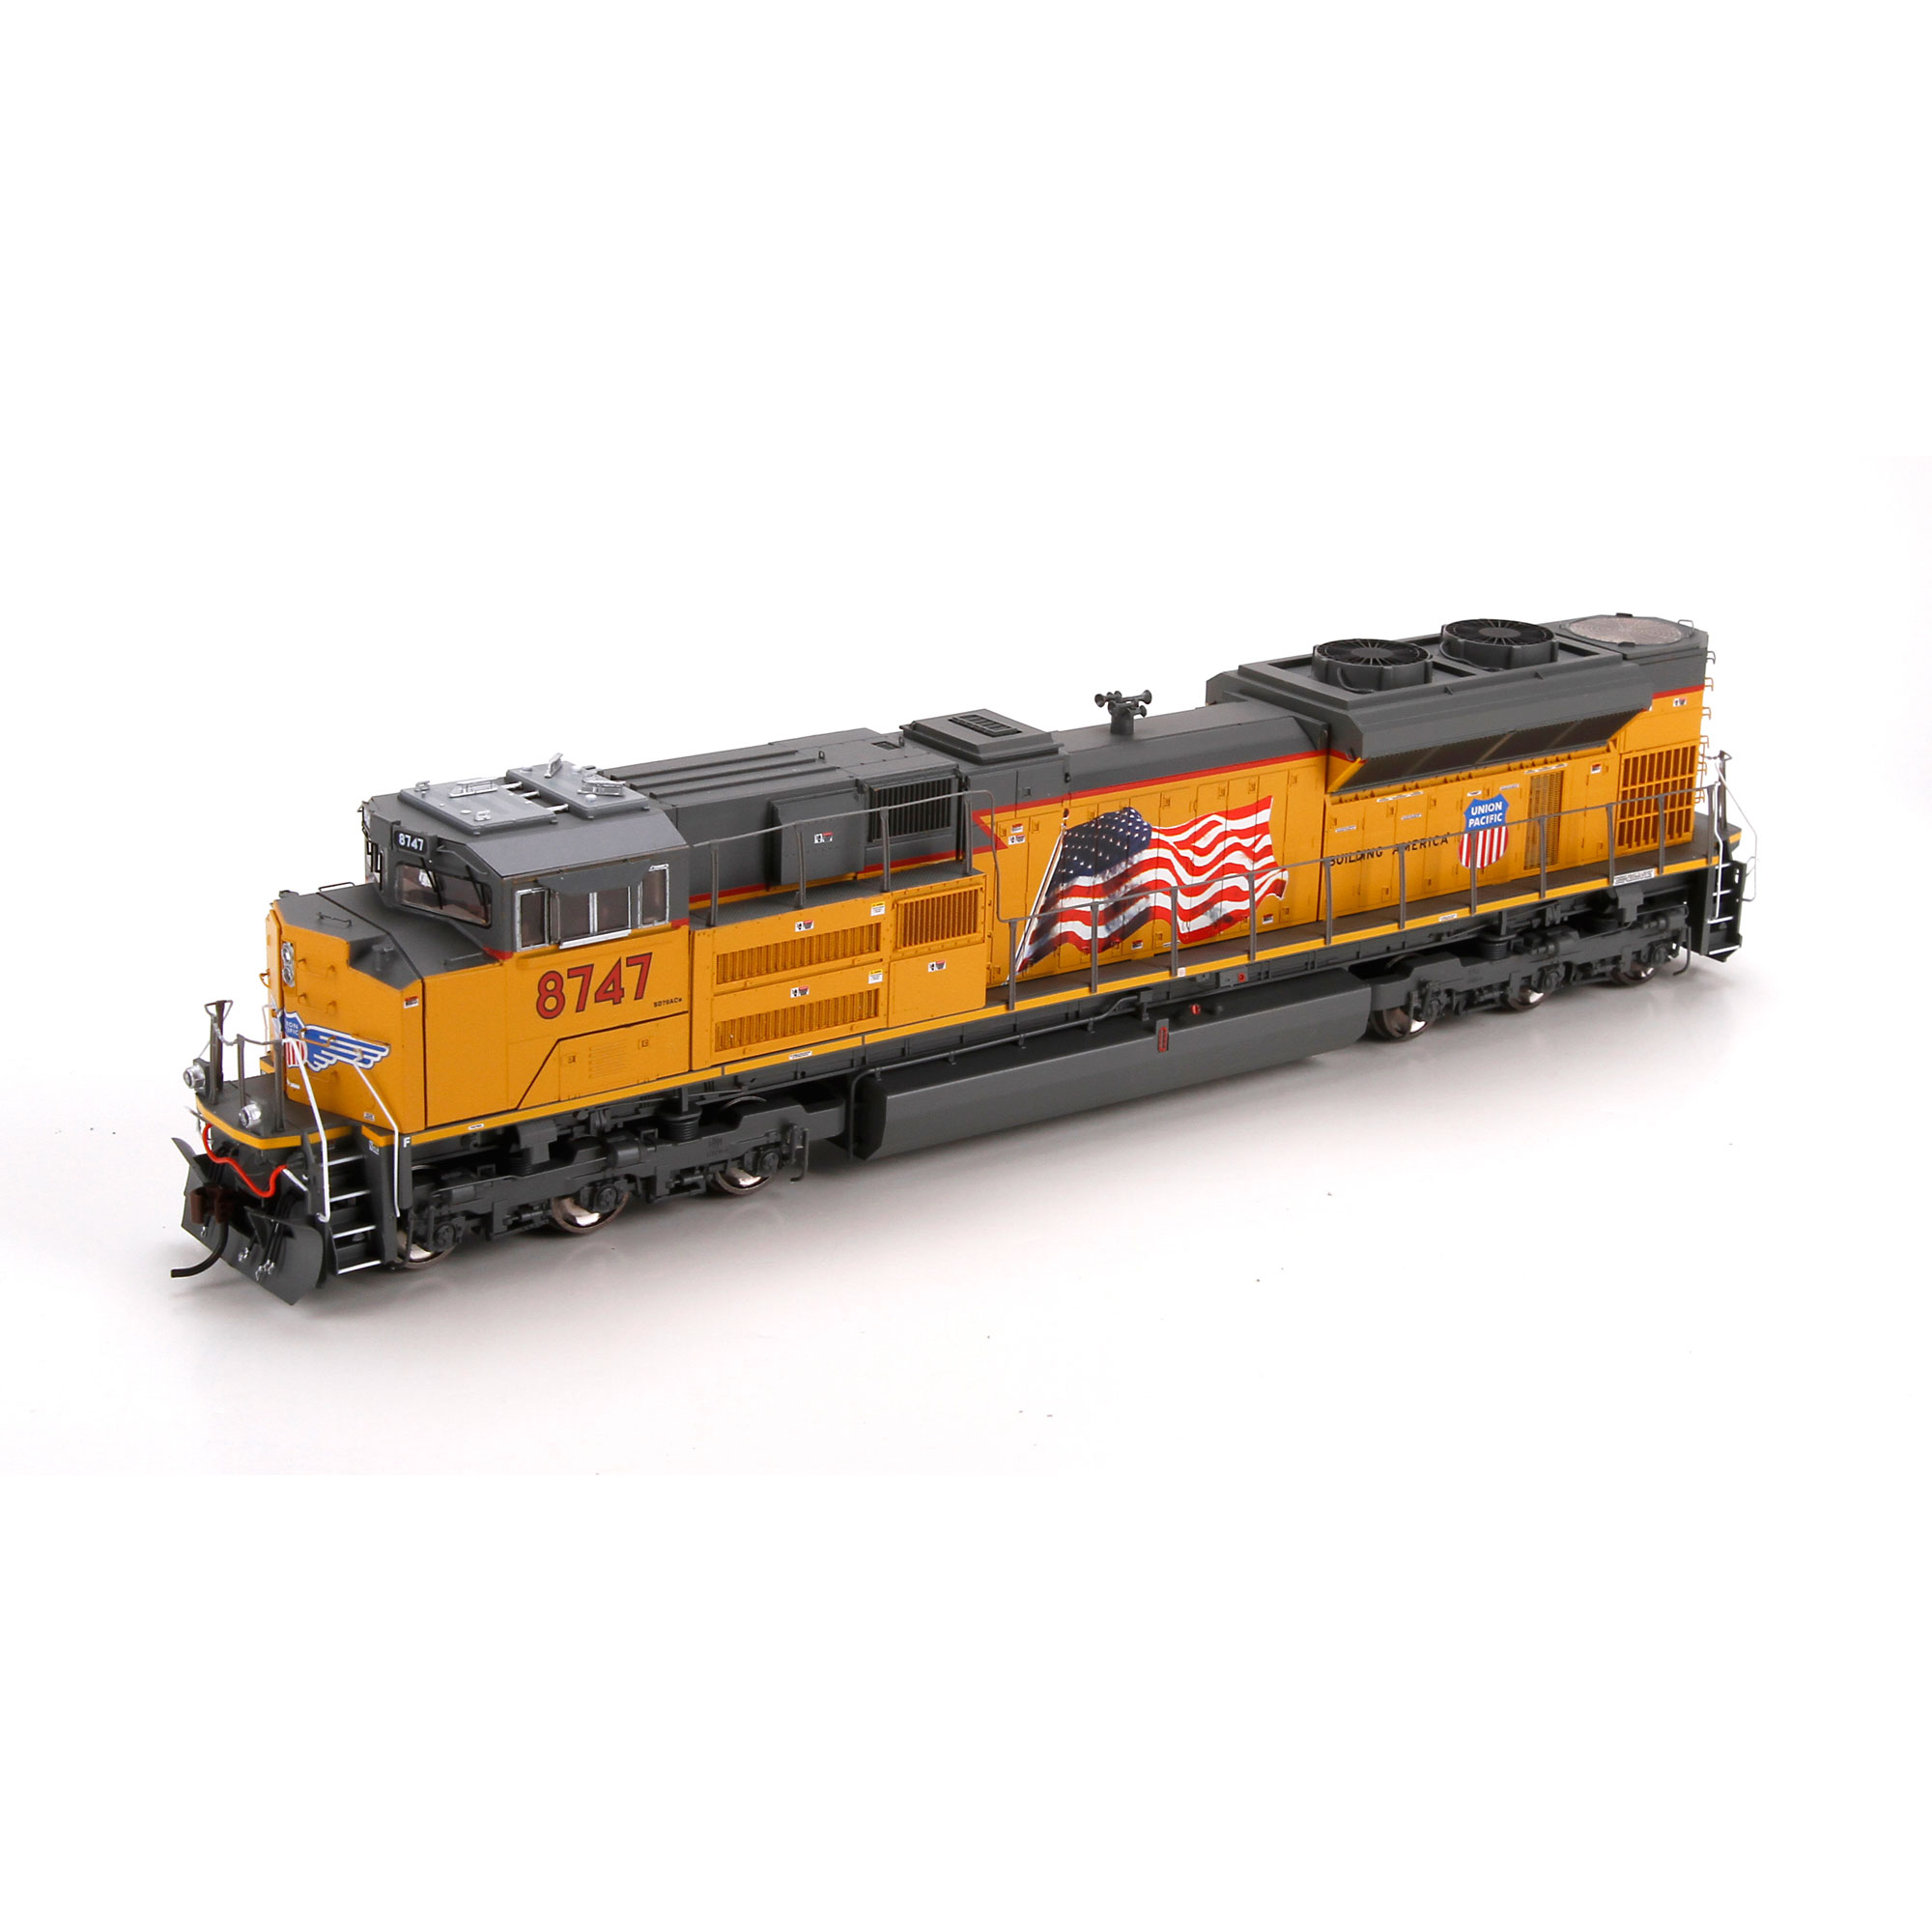 Ho Sd70ace W Dcc Amp Sound Up 8747 Athg68812 Athearn Trains